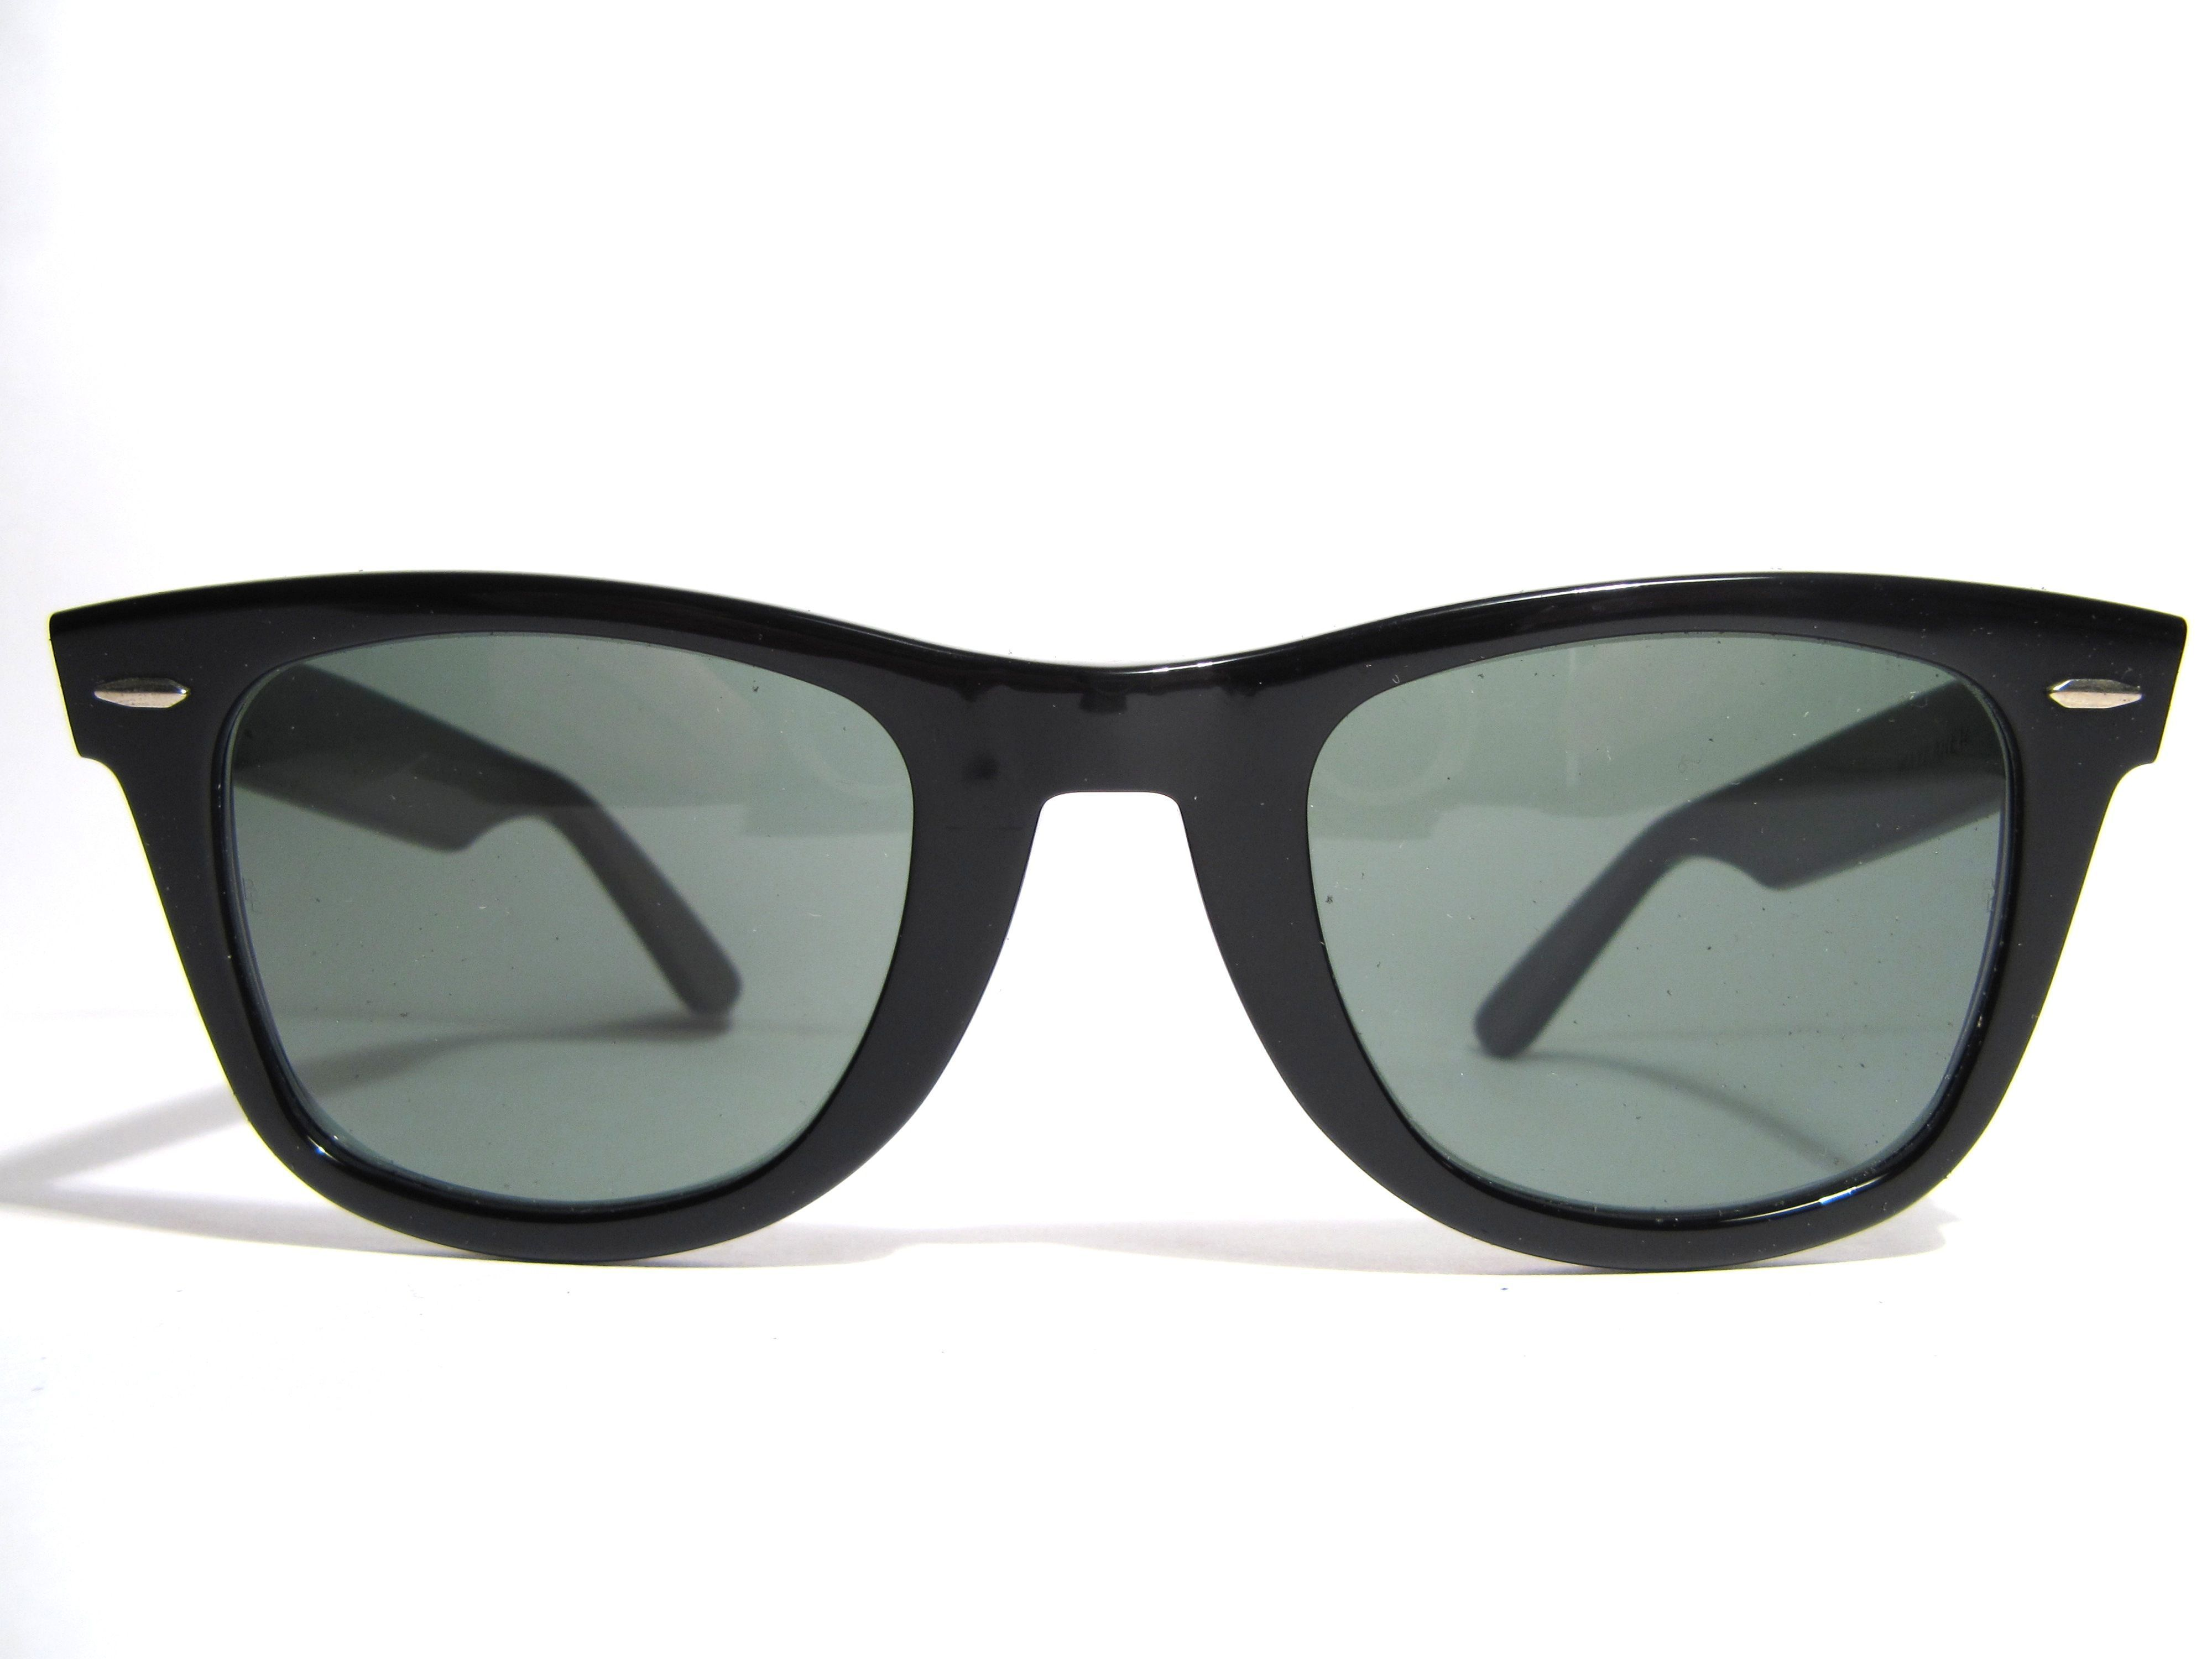 b2aa5c67e7b3f Black Ray-Ban sunglasses Erica style black ray ban sunglasses  perfect  condition no signs of wear. Selling on Merc as well Ray-Ban Accessories  Sunglasses   ...